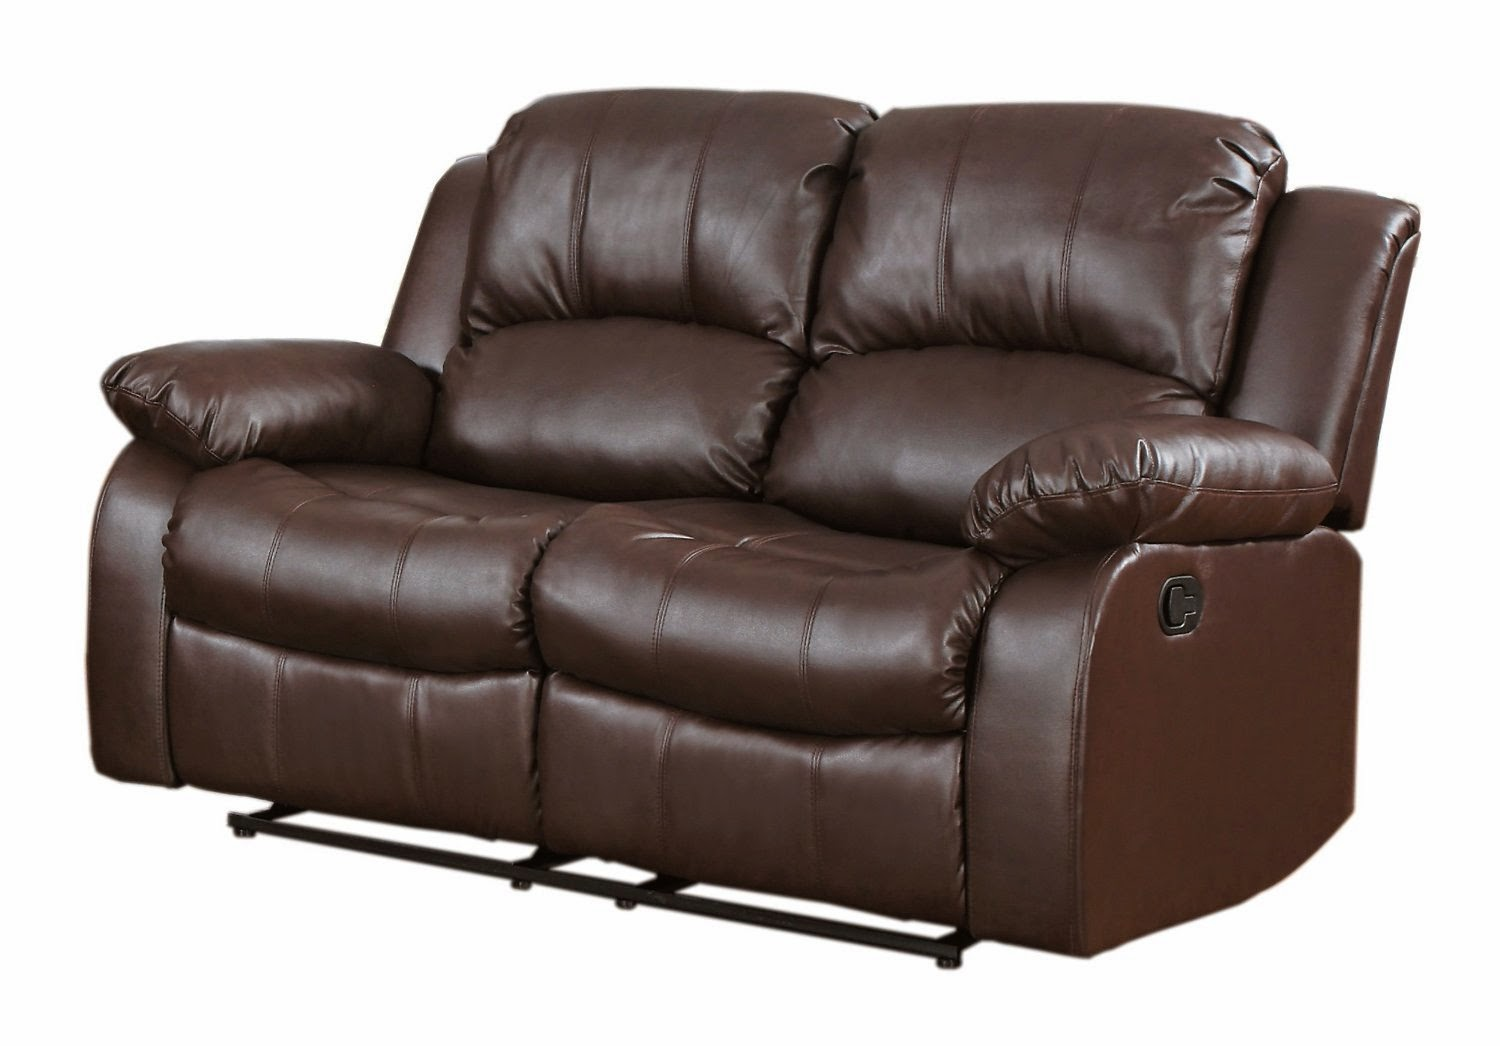 3 2 recliner sofa patio furniture the best reclining sofas ratings reviews seater leather